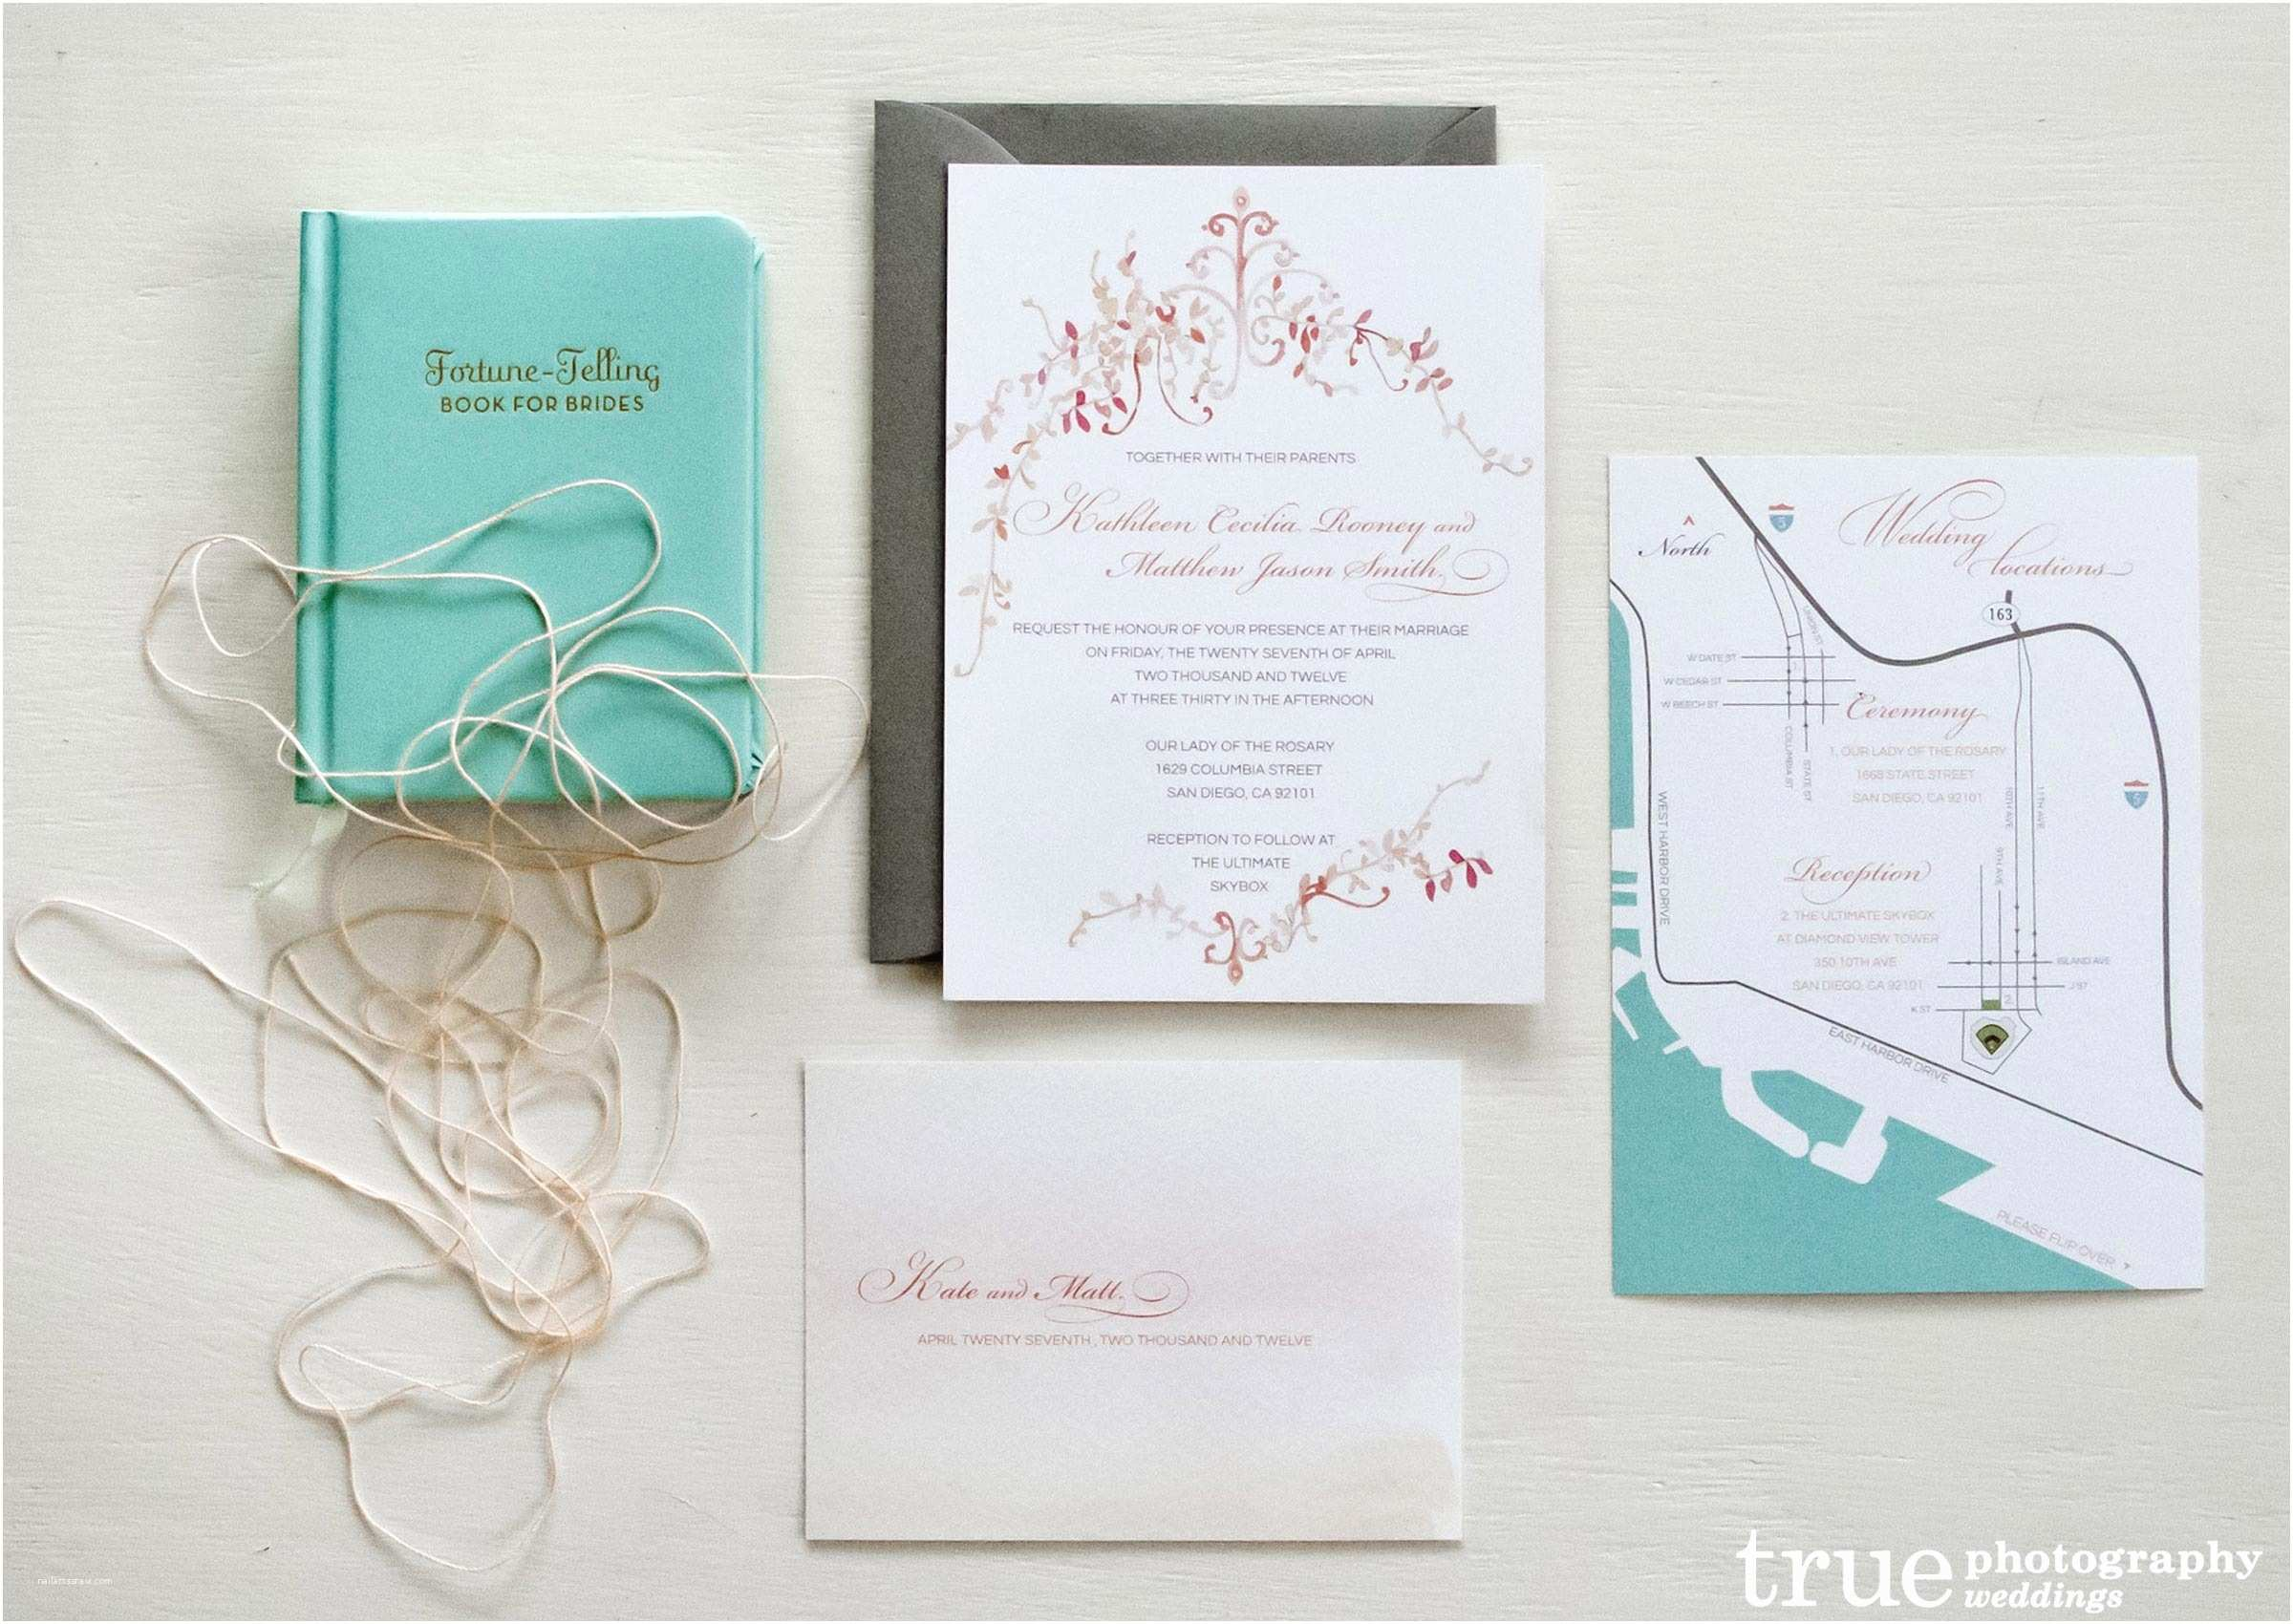 How to Print Wedding Invitations How to Make Diy Wedding Invitation Kits Ideas with Looking